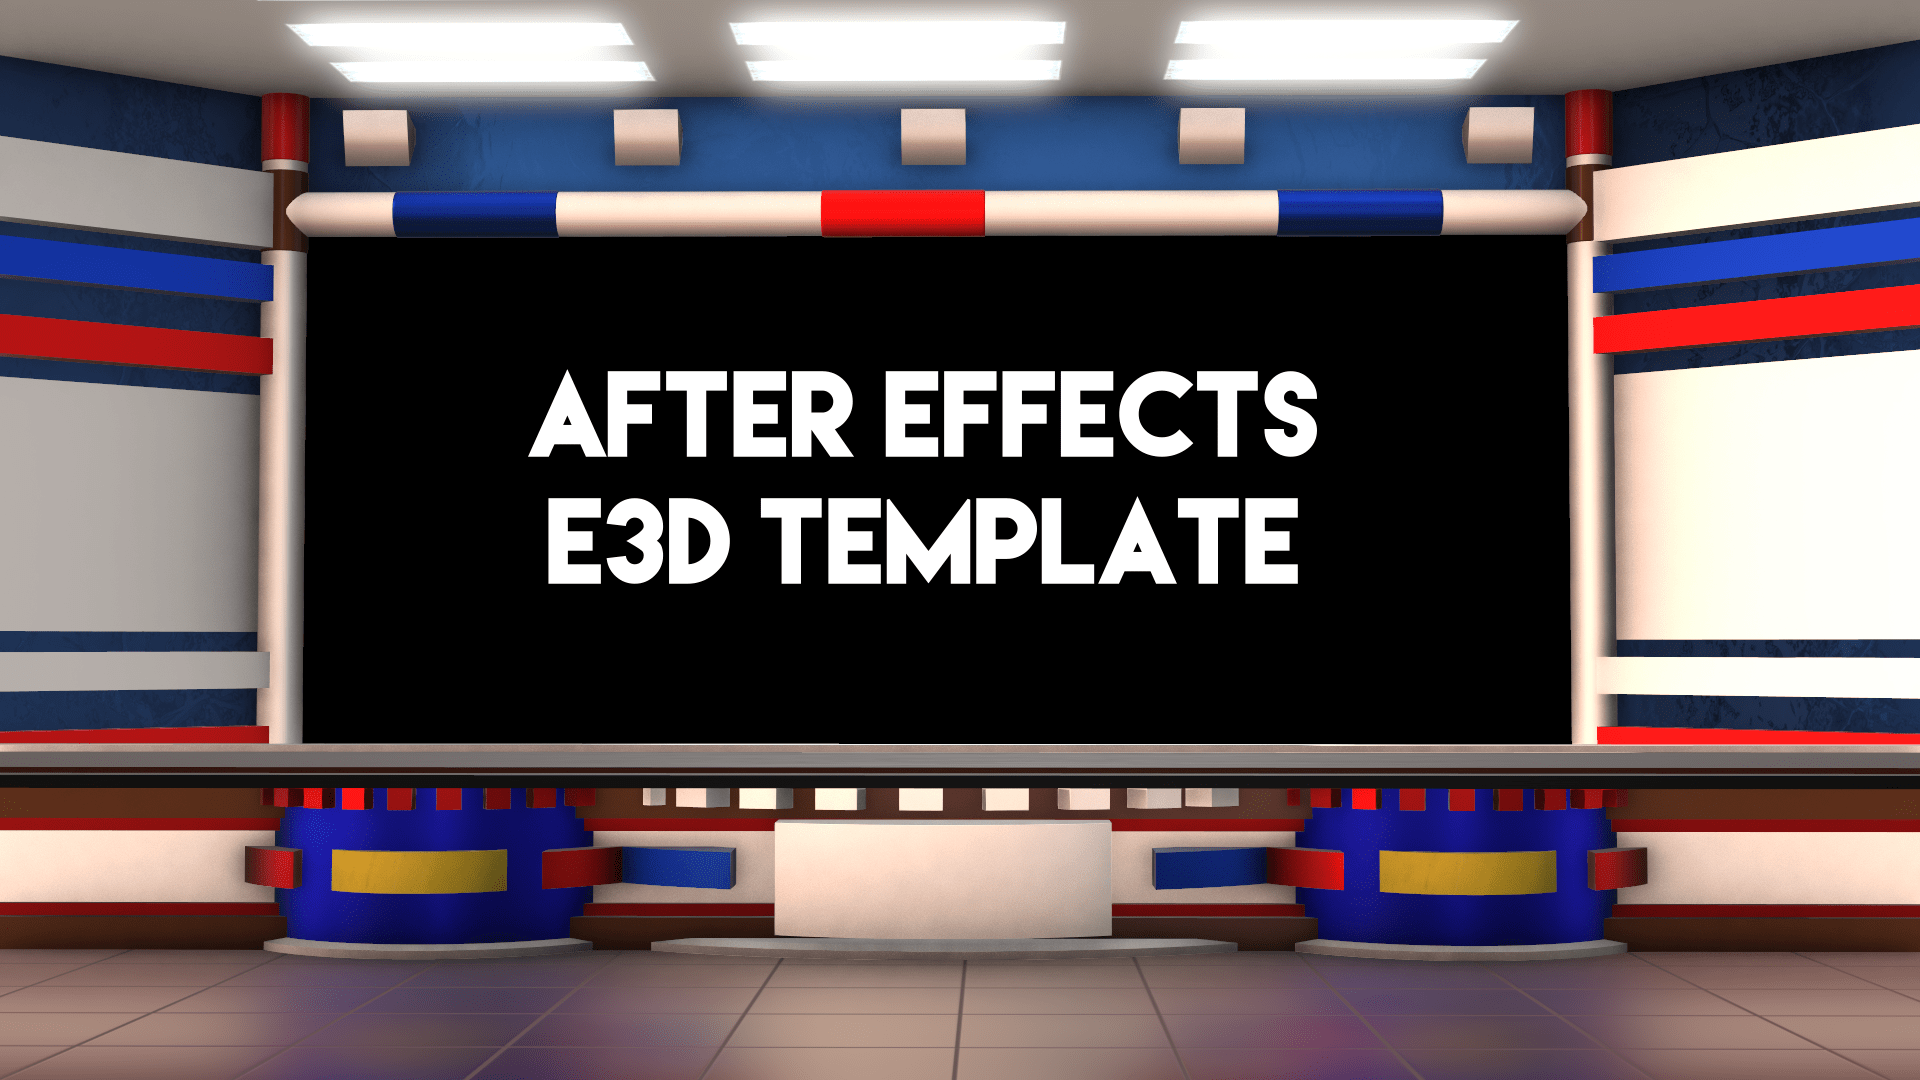 After Effects Element 3d template news studio desk mtc tutorials_00000